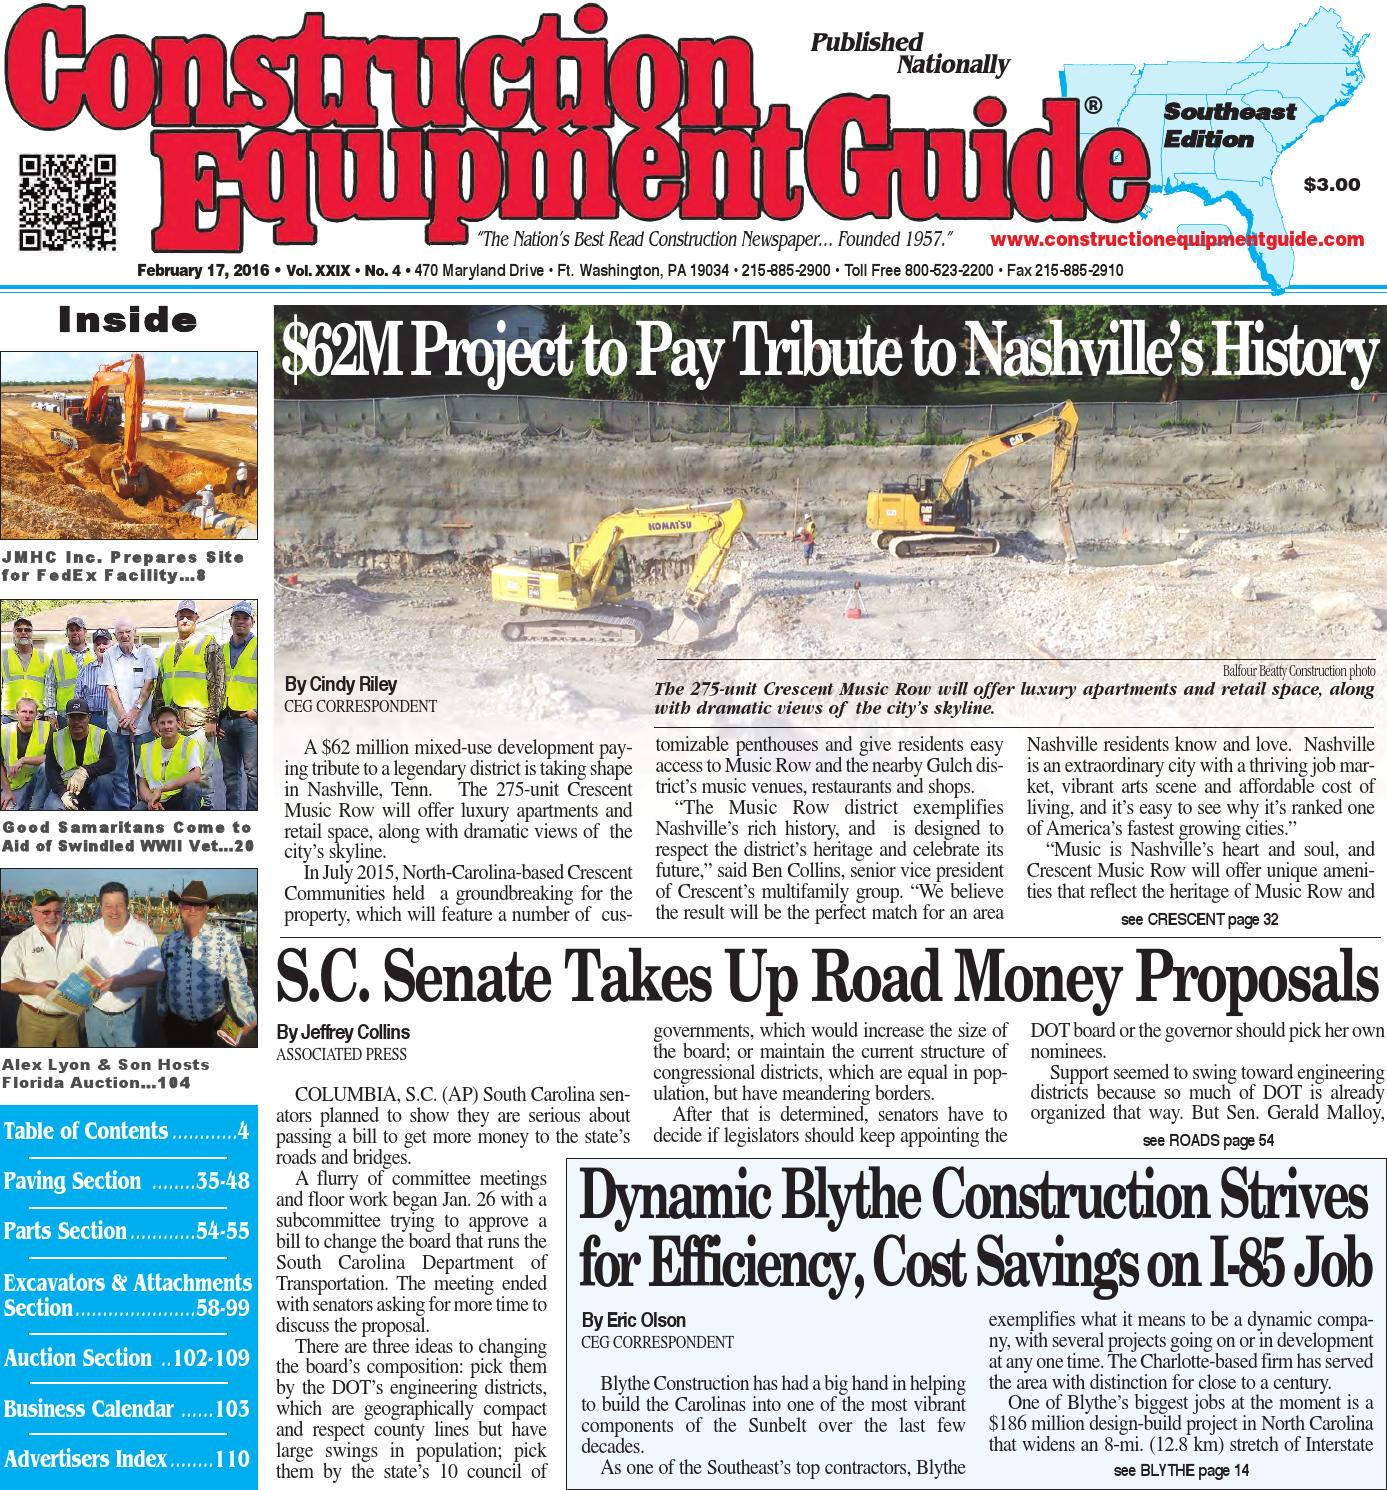 Southeast 04 2016 by Construction Equipment Guide - issuu afa3be3479